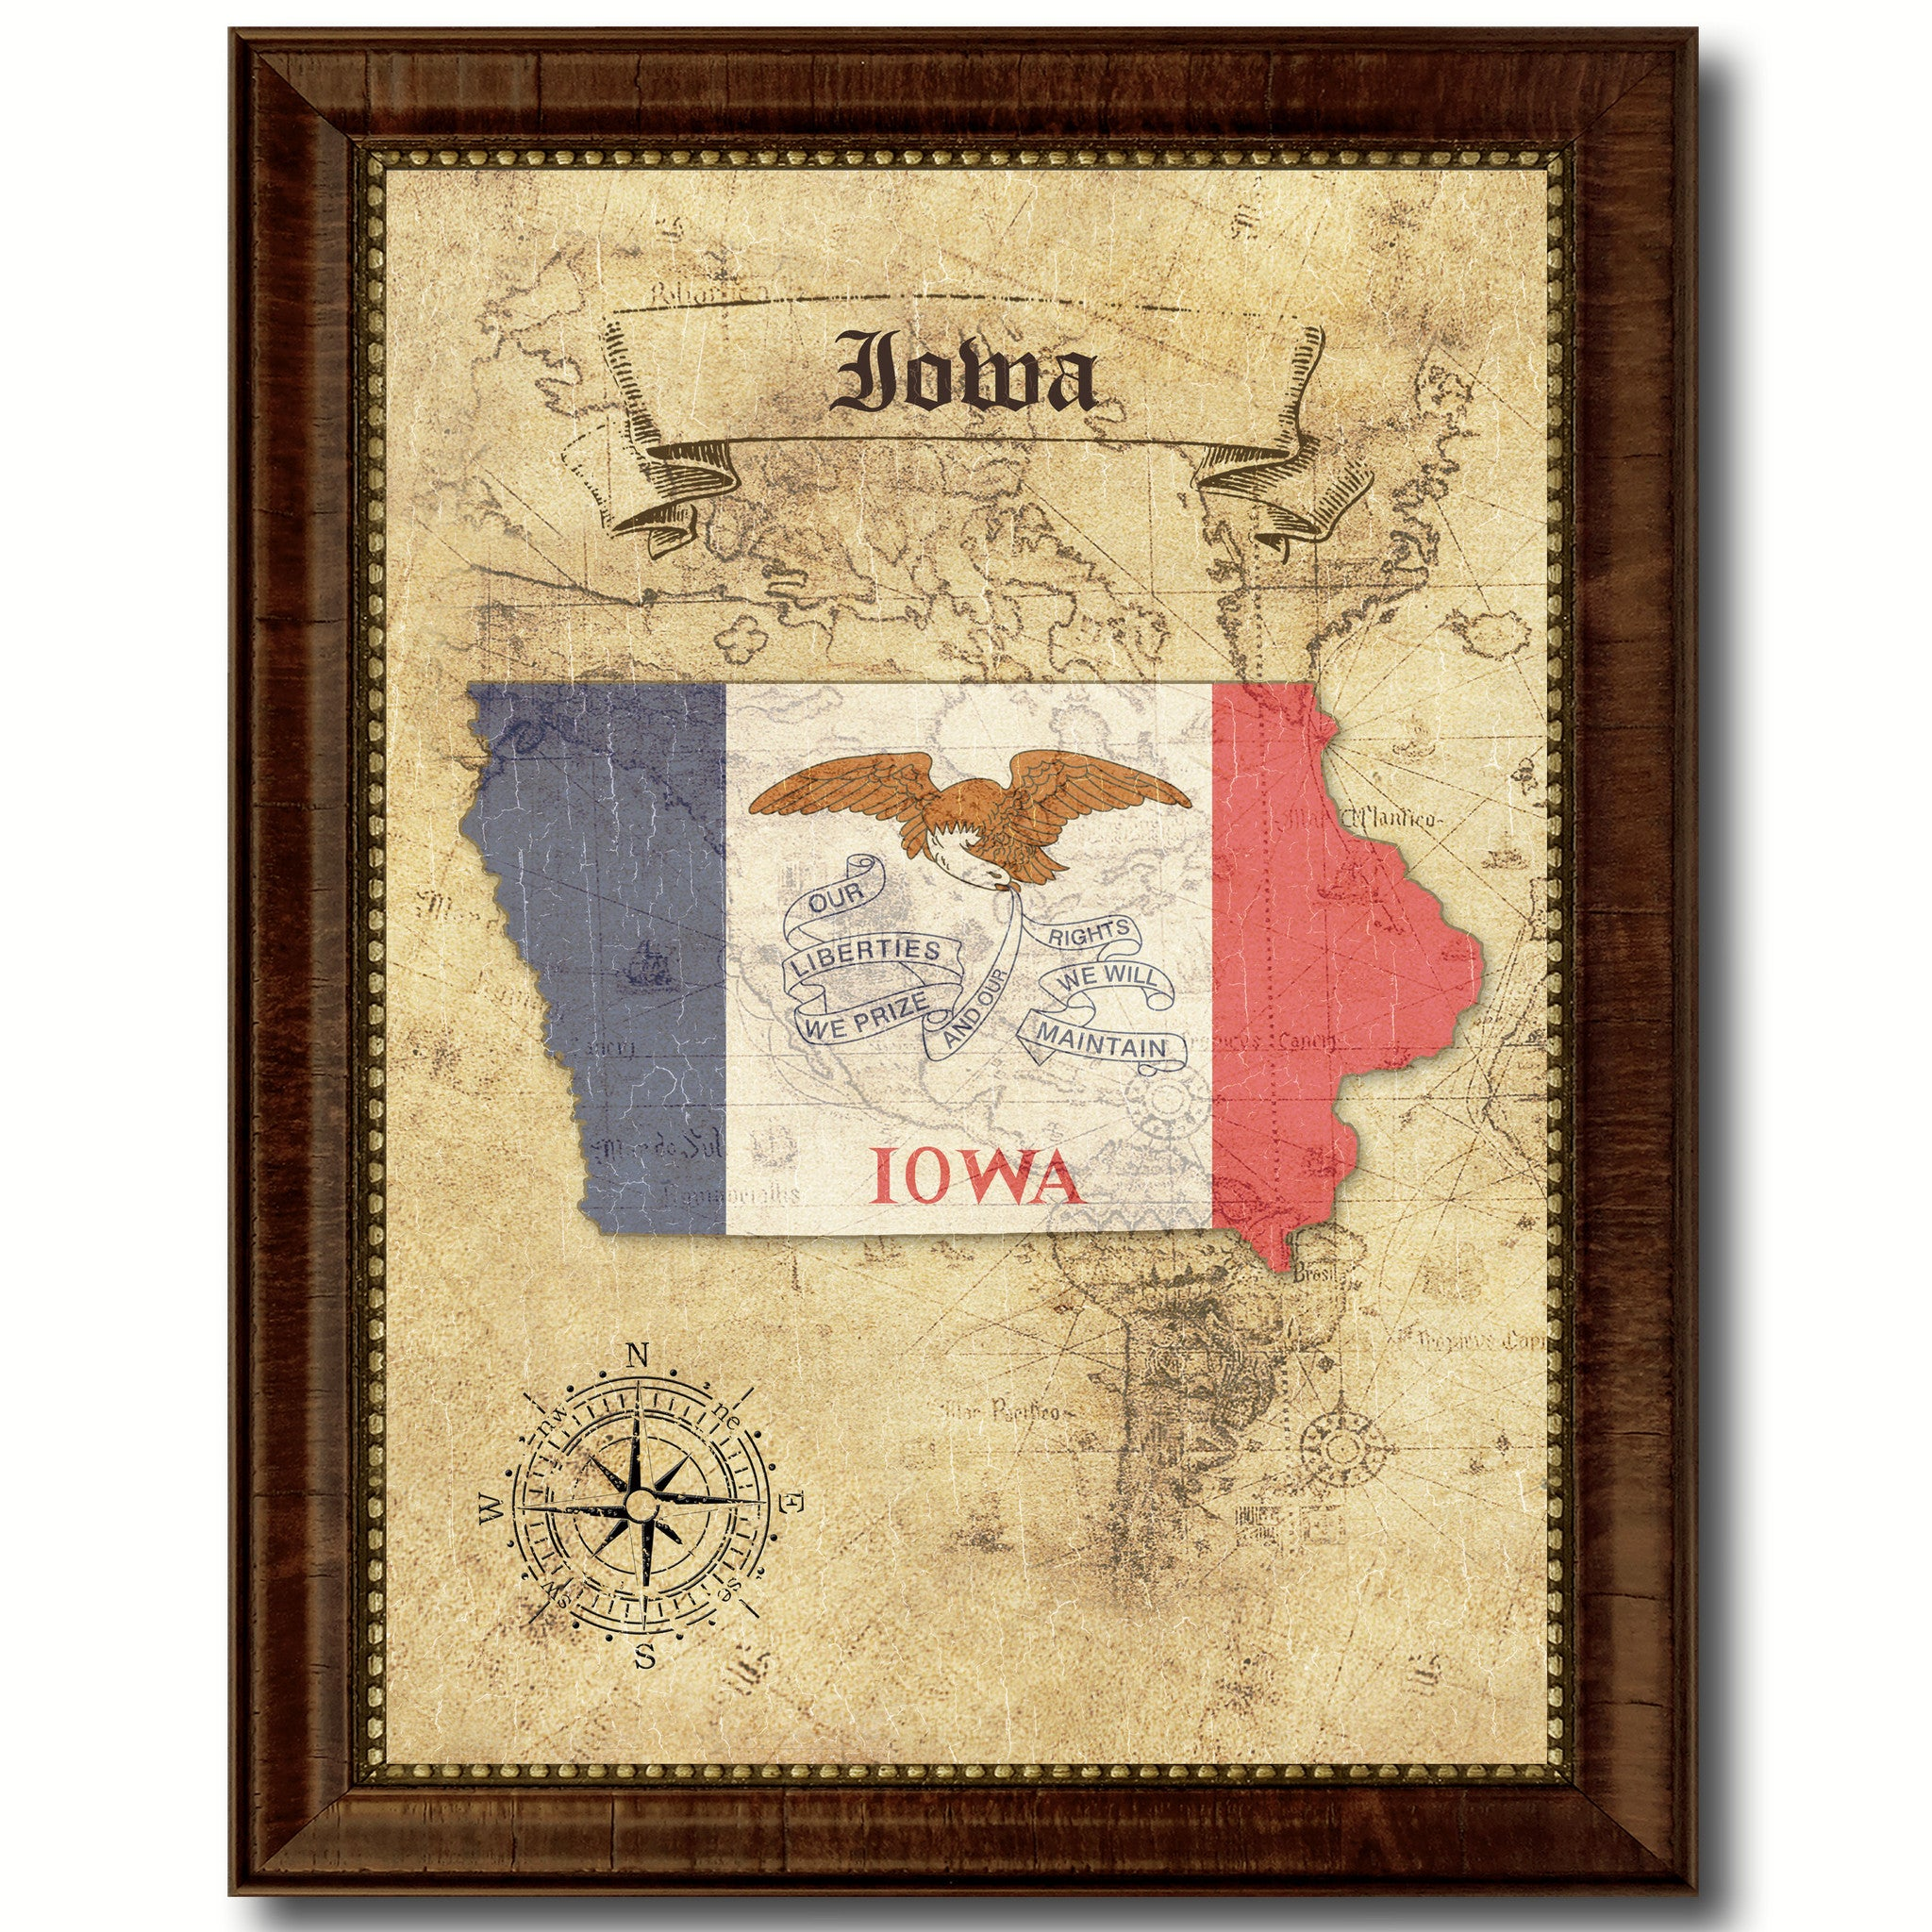 Iowa State Vintage Map Home Decor Wall Art Office Decoration Gift Ideas